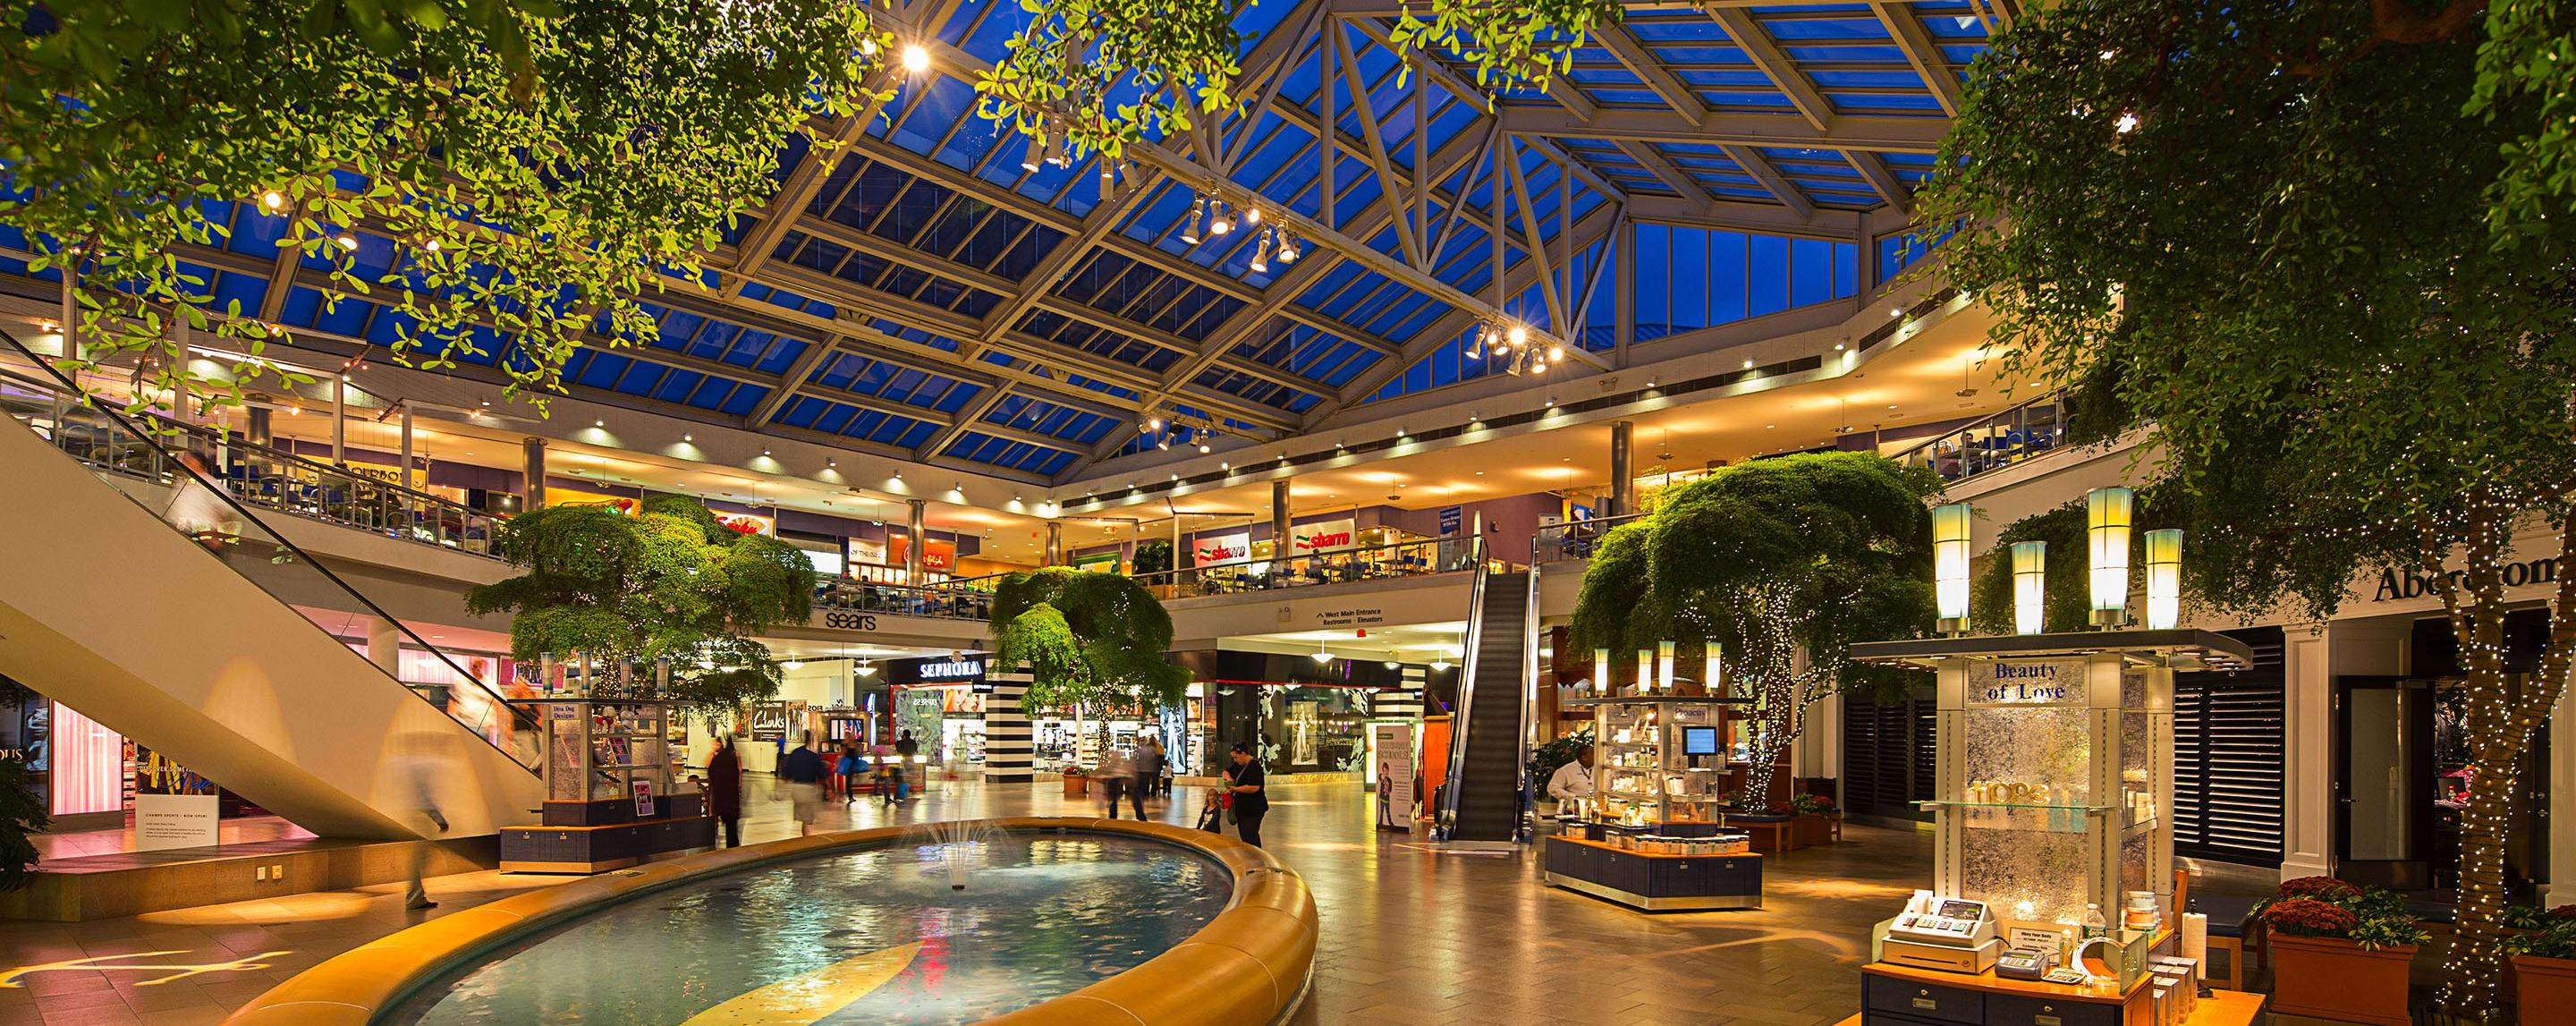 Skylights let shoppers see the night sky at Paramus Park, while a fountain and trees decorate the interior near kiosks and storefronts